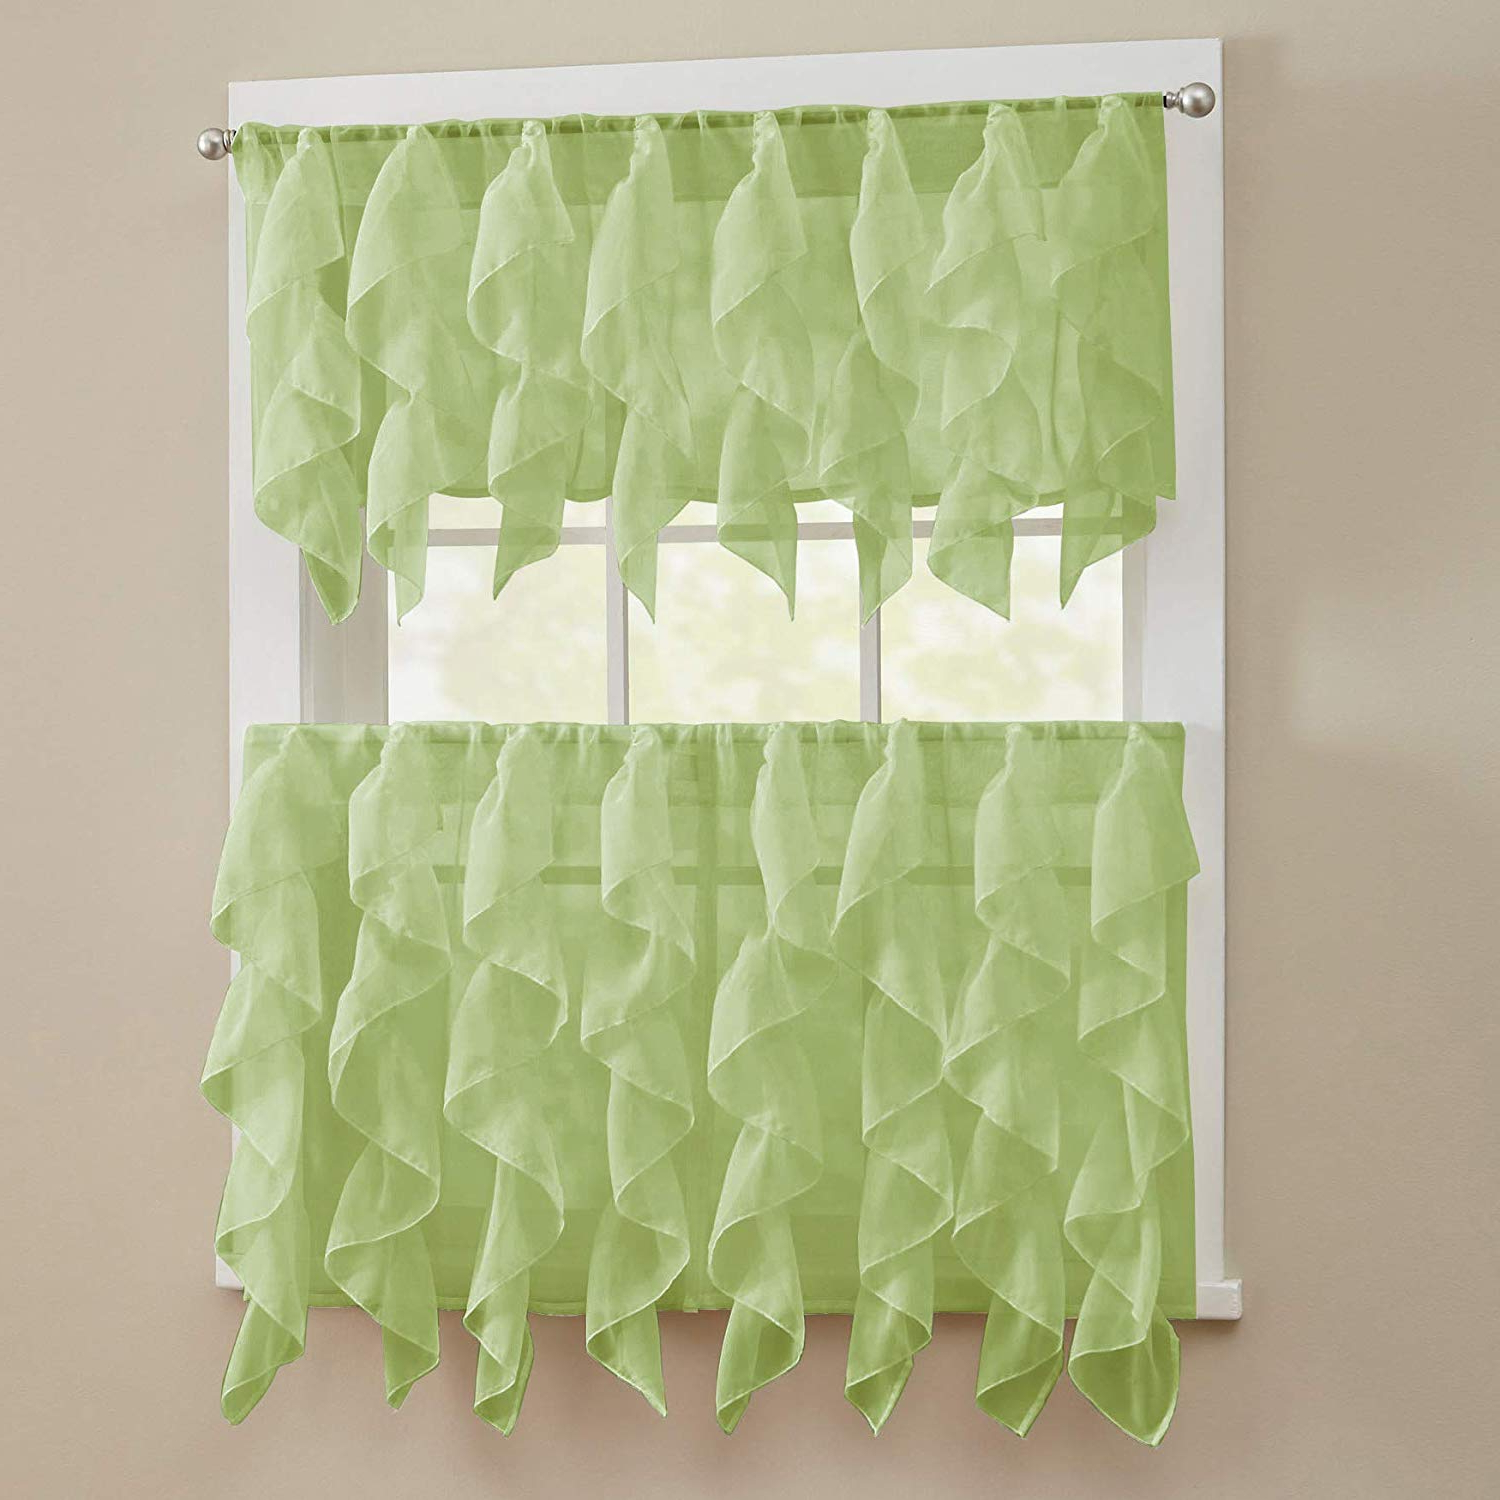 """Vertical Ruffled Waterfall Valance And Curtain Tiers Intended For Most Up To Date Sweet Home Collection 3 Piece Kitchen Curtain Set Sheet Vertical Cascading Waterfall Ruffle Includes Valance & Choice Of 24"""" Or 36"""" Teir Pair, Tier, (View 10 of 20)"""